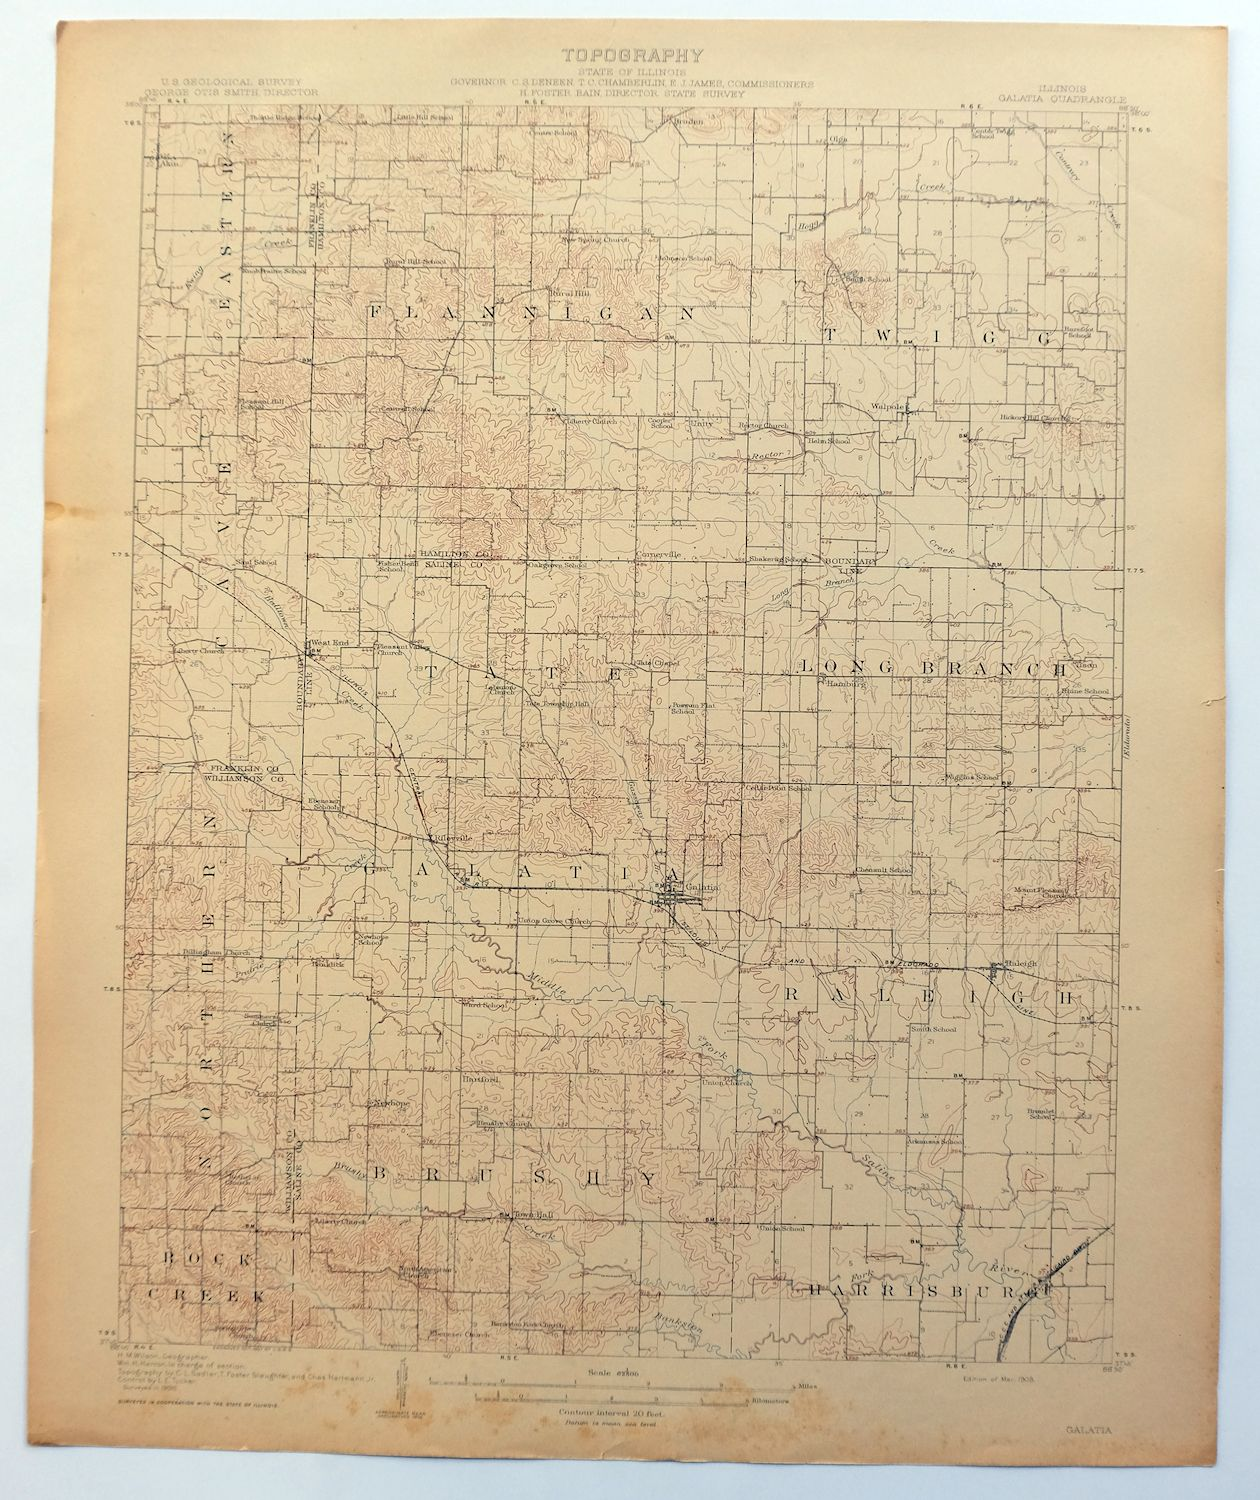 Harrisburg Illinois Map.1908 Galatia Illinois Harrisburg Rare Antique Original Usgs